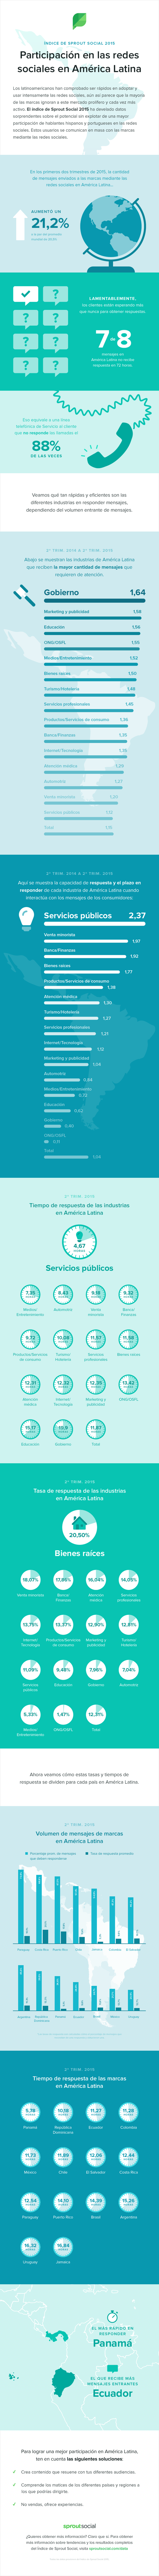 infografía-latinoamerica-marketing-redes-sociales